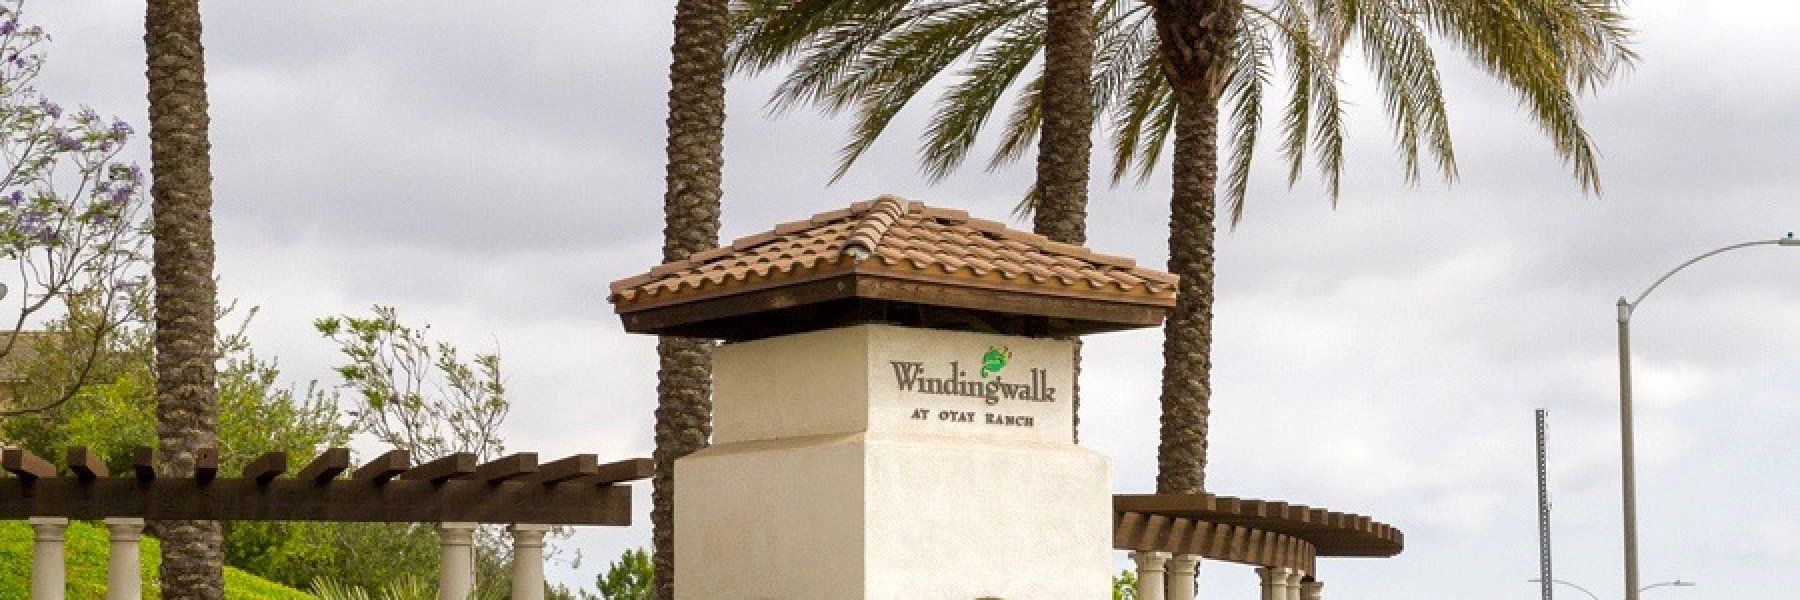 Winding Walk is a community of homes in Chula Vista